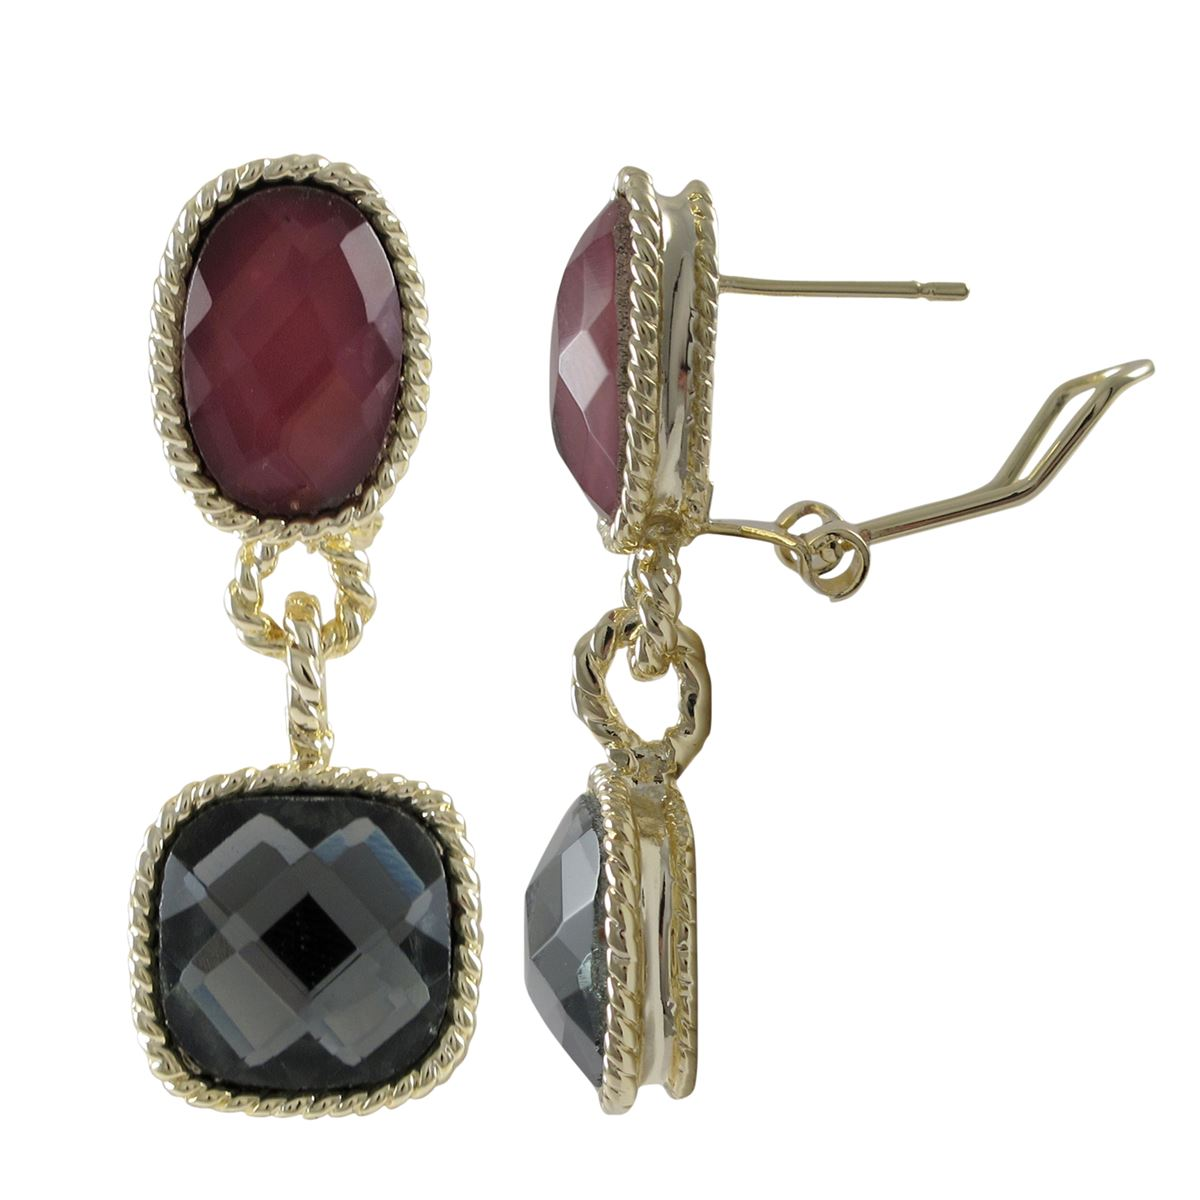 Grey Colour Earrings: Gold Plated Brass Omega Clip Earrings In Dark Red & Grey Color